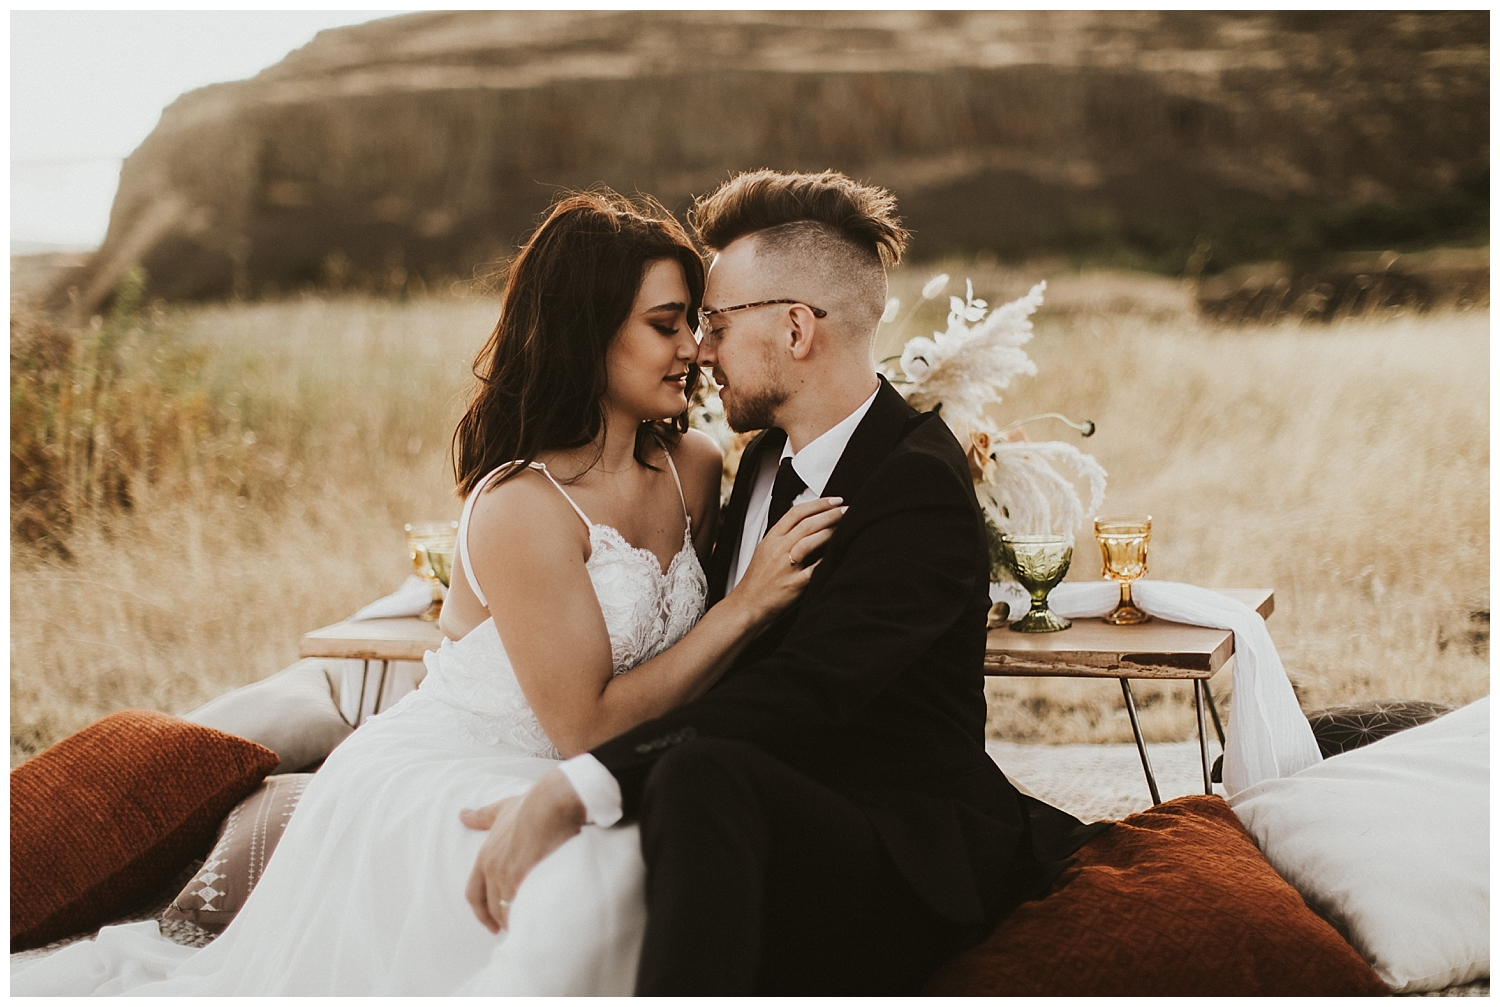 a bride and groom sit at their boho picnic in the desert and snuggle up to one another